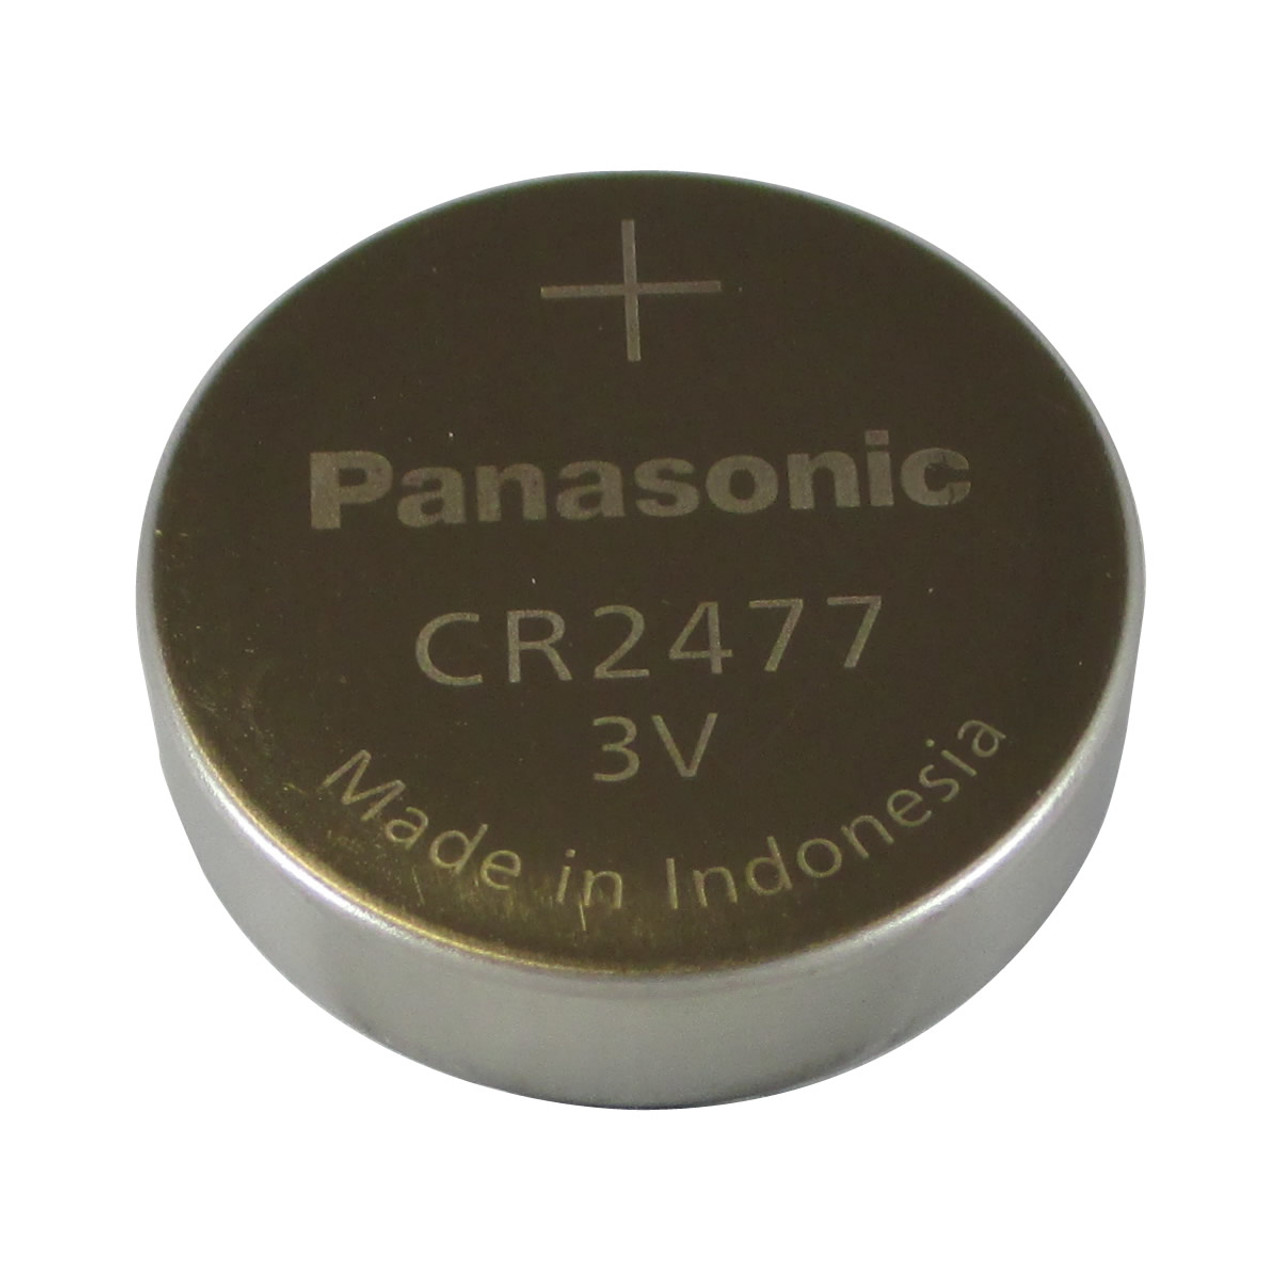 Panasonic CR2477 Lithium Battery - 3 Volt 1000mAh